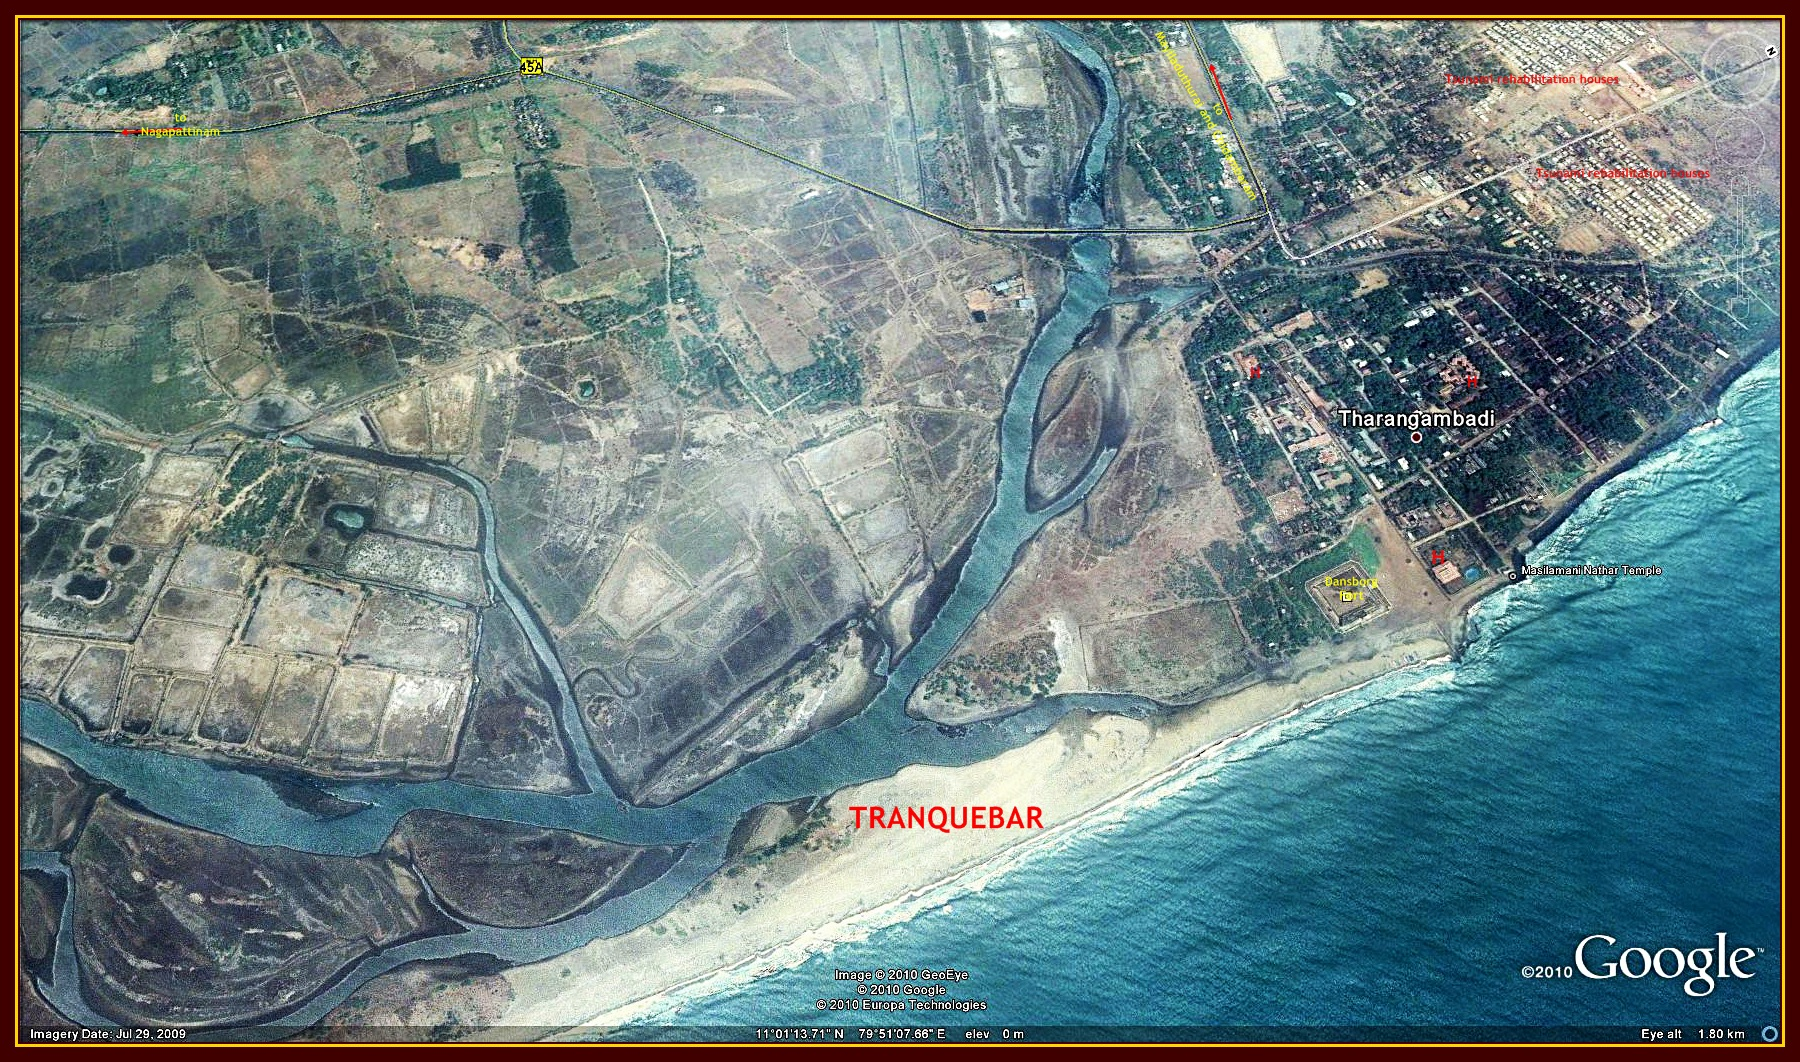 Google Earth Image of Tranquebar / Tharangambadi